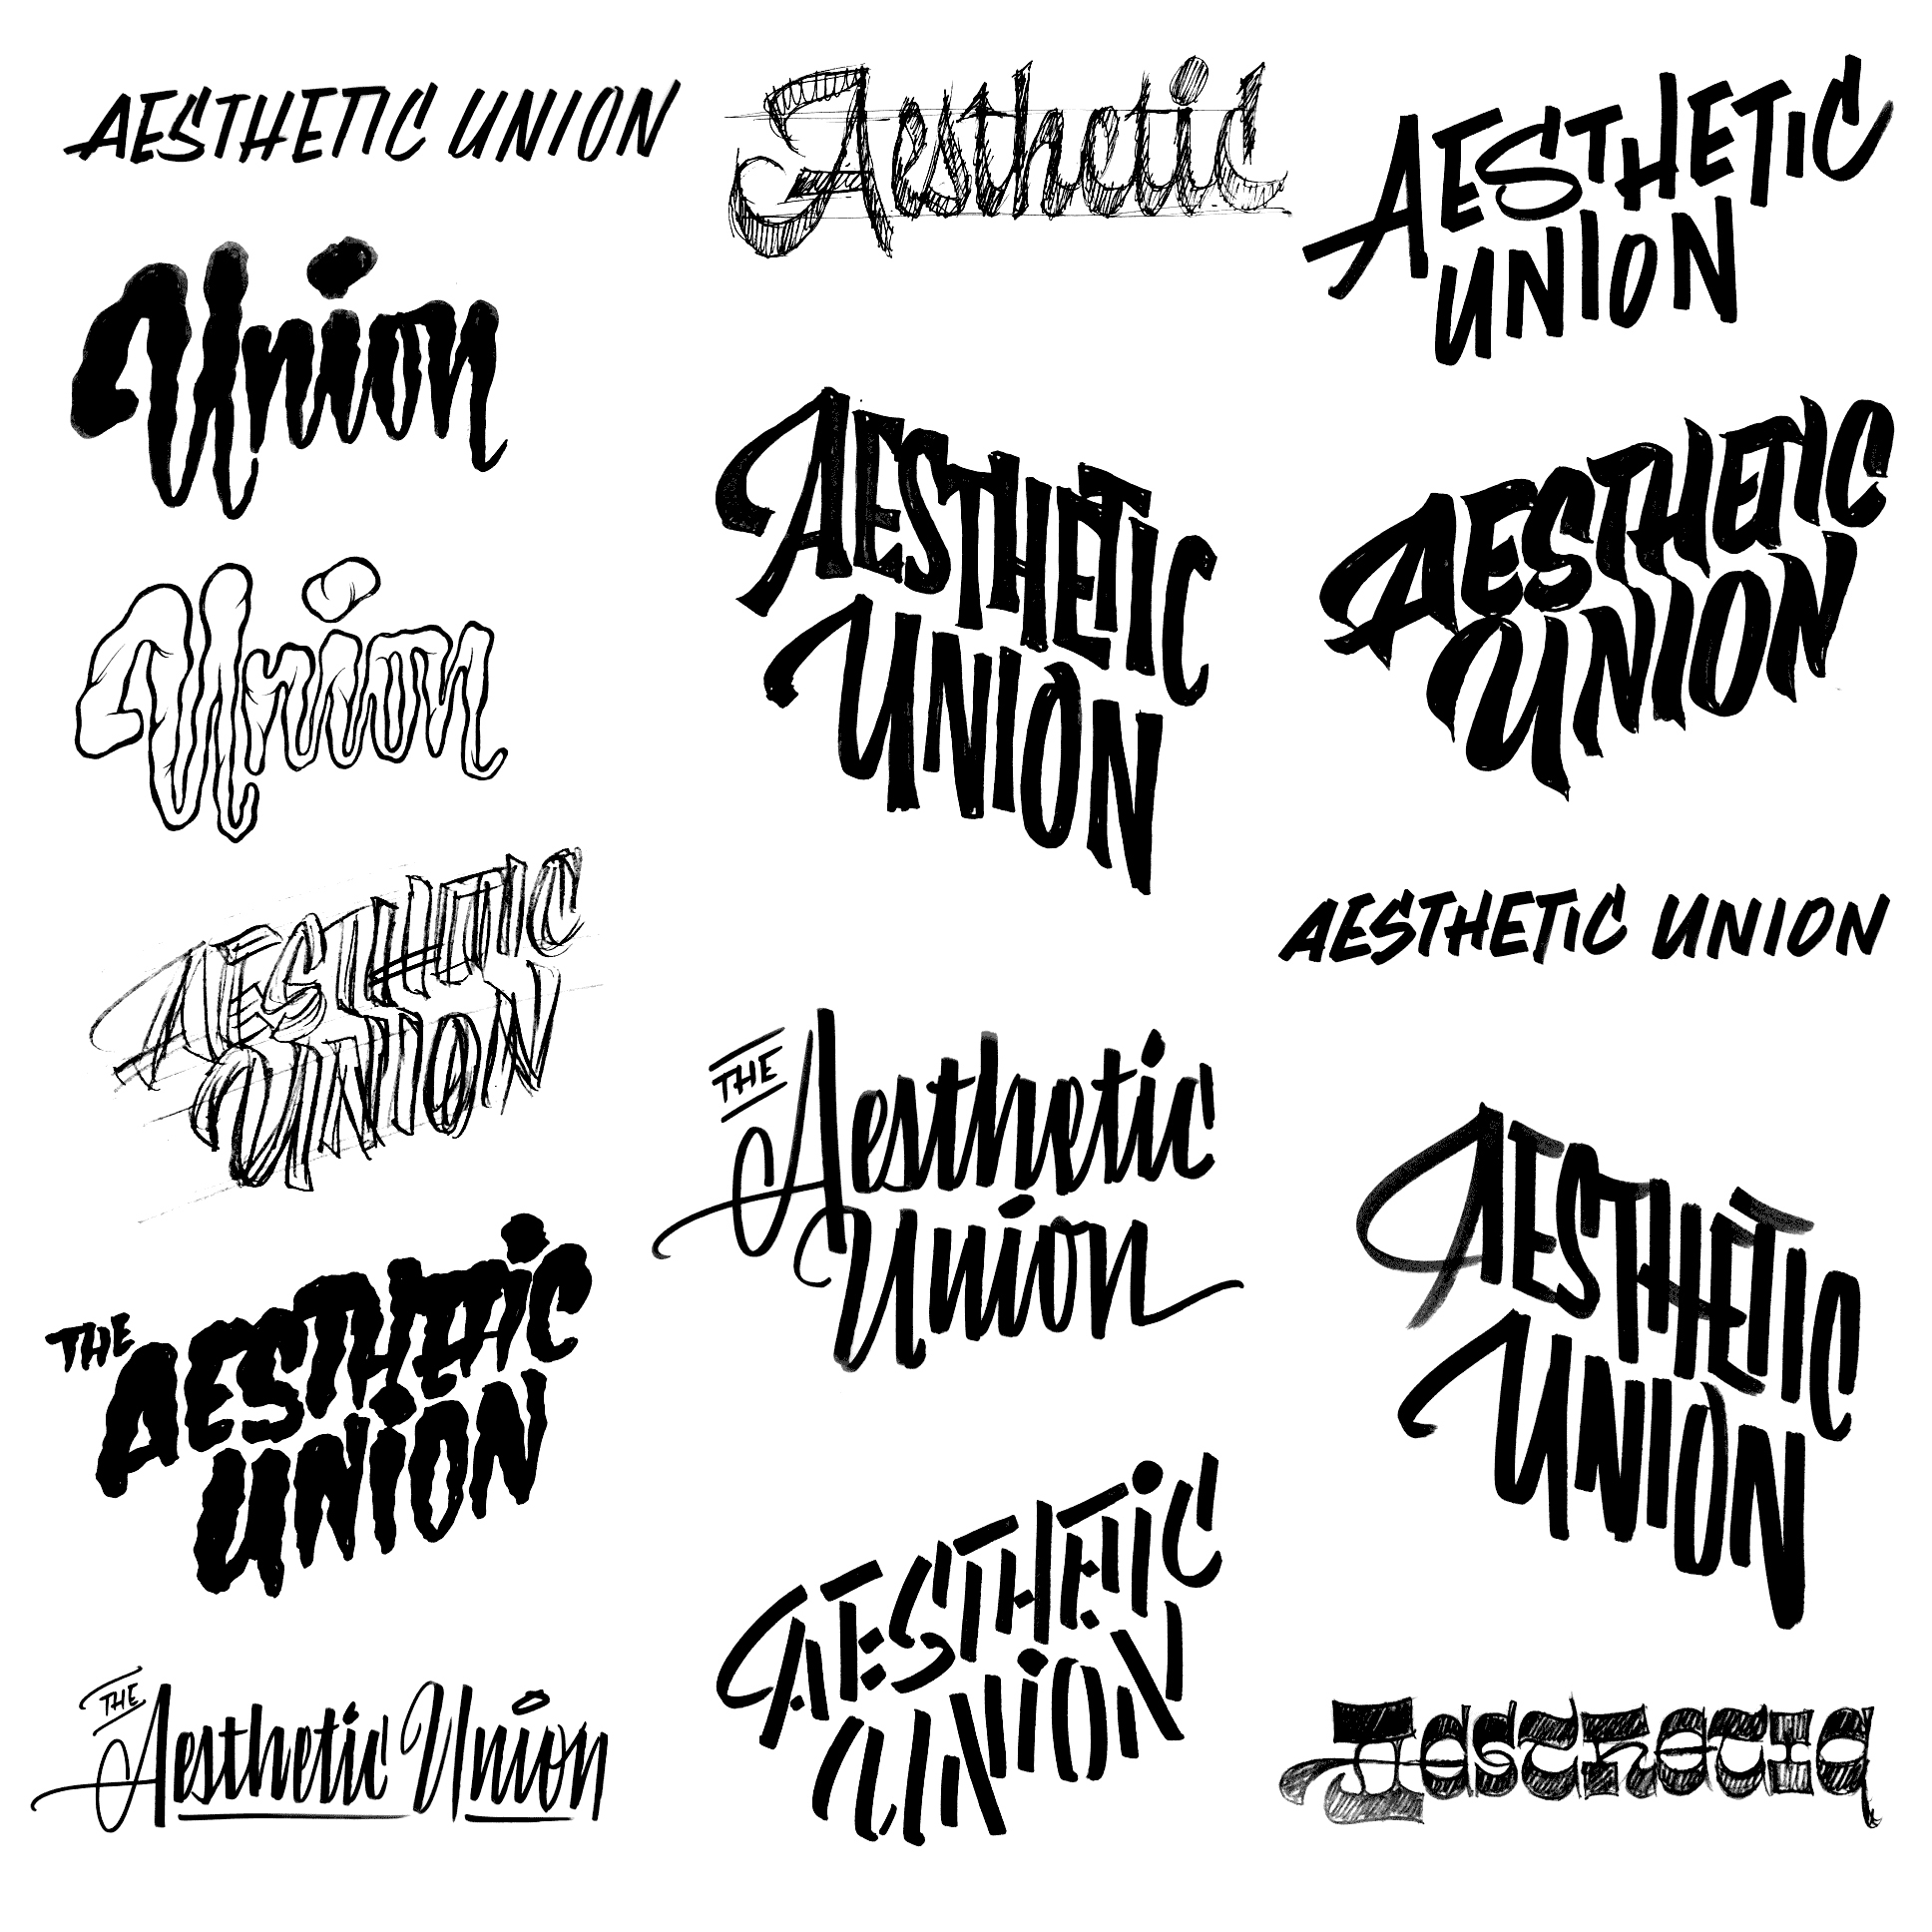 Aesthetic Union